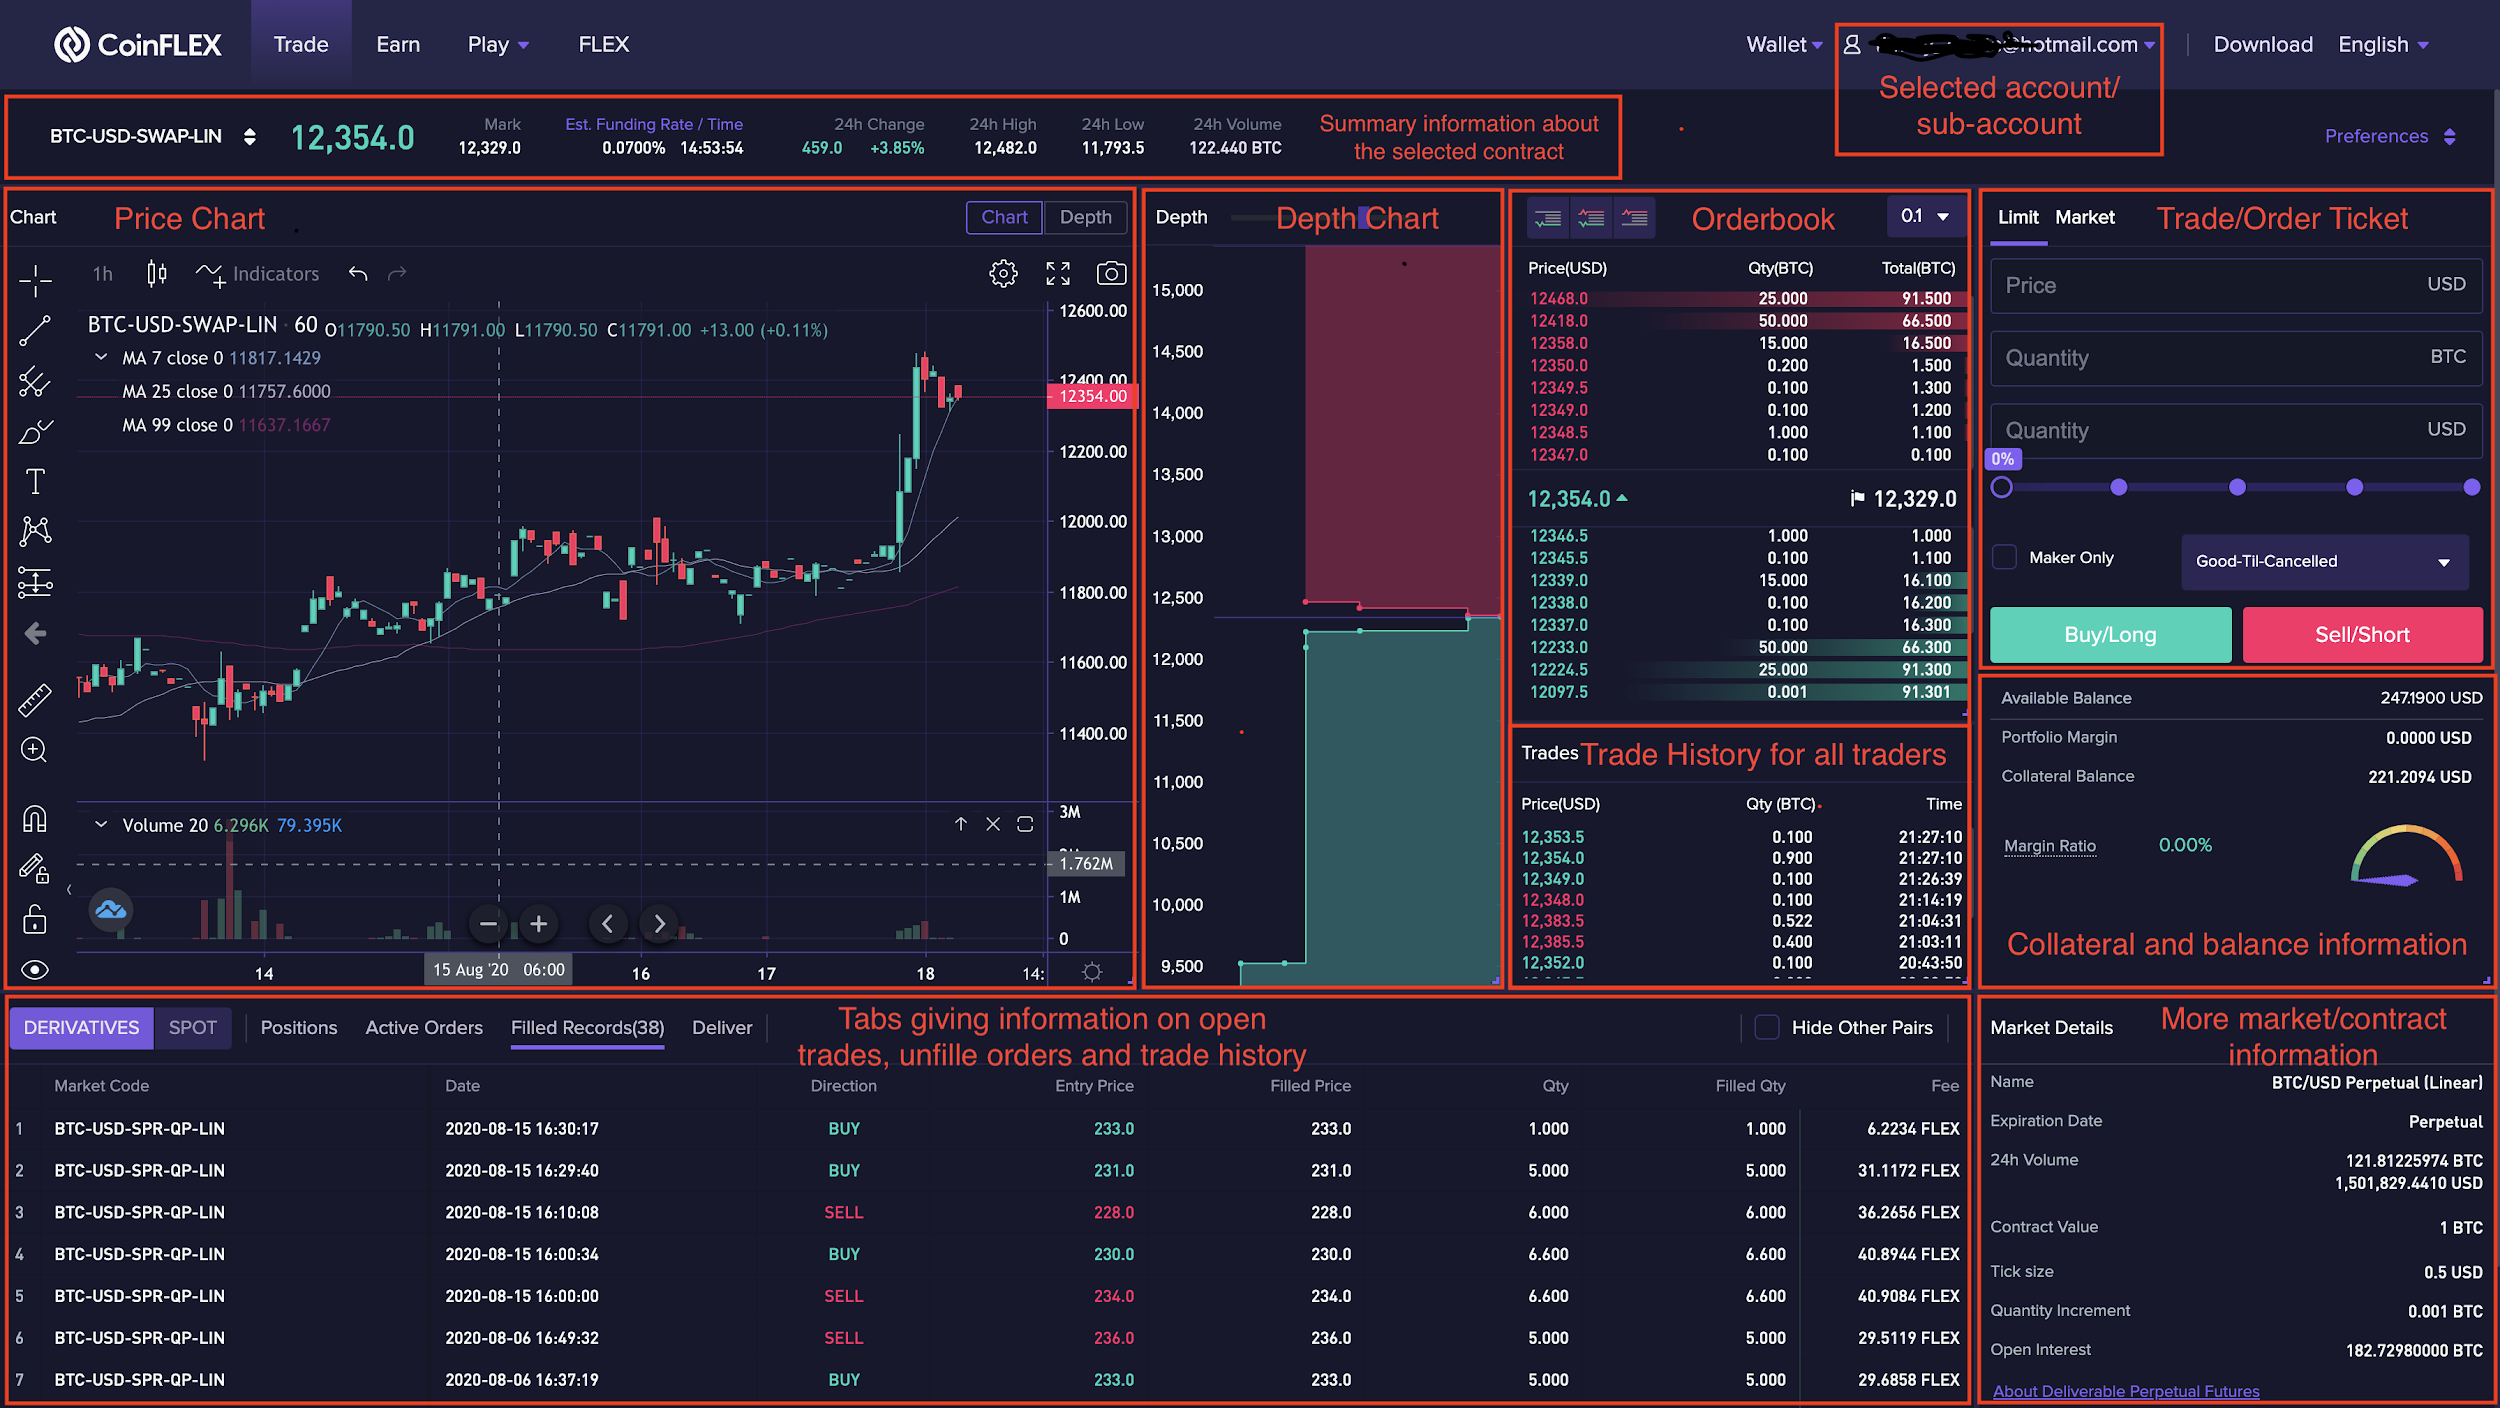 Trading UI1 2.1.1 Trading UI introduction